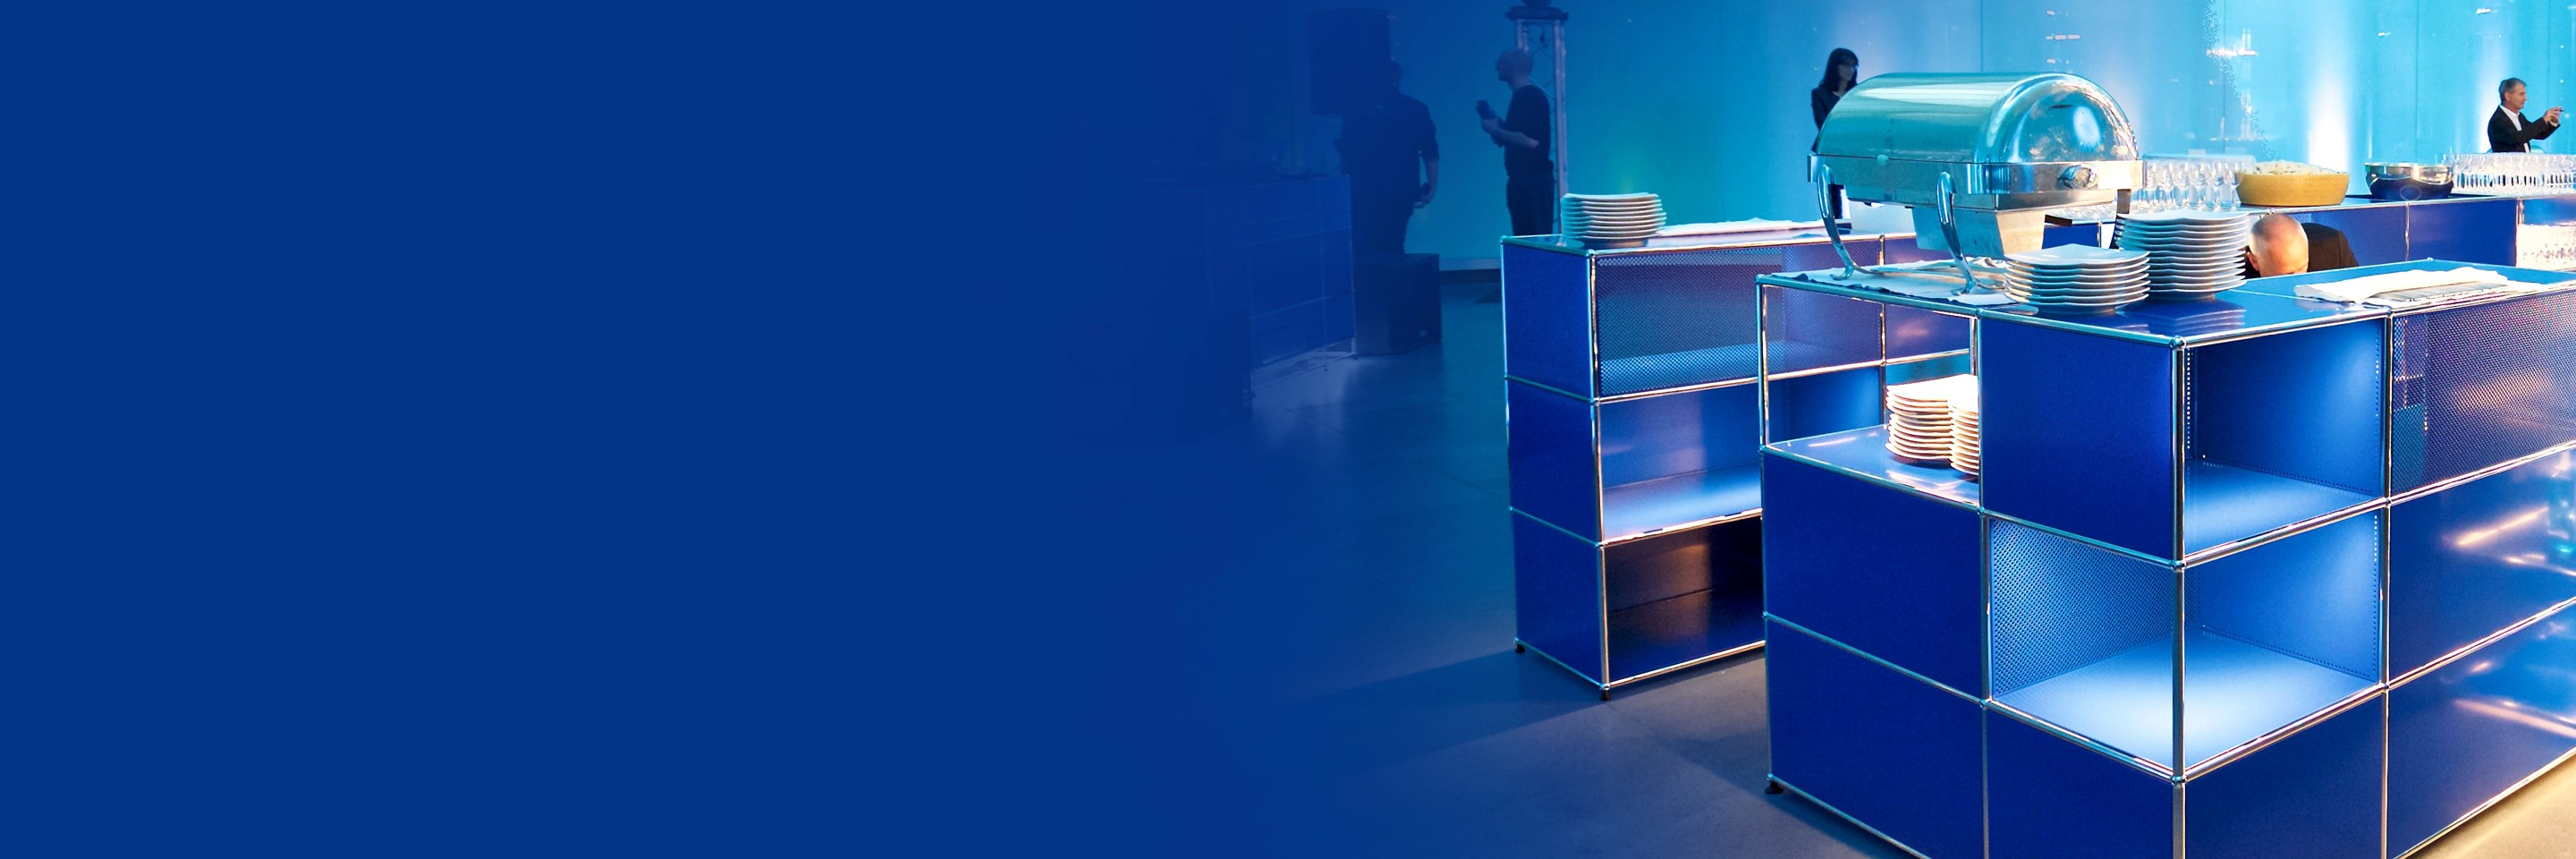 blue USM Haller E storage for a modern party with built-in lighting